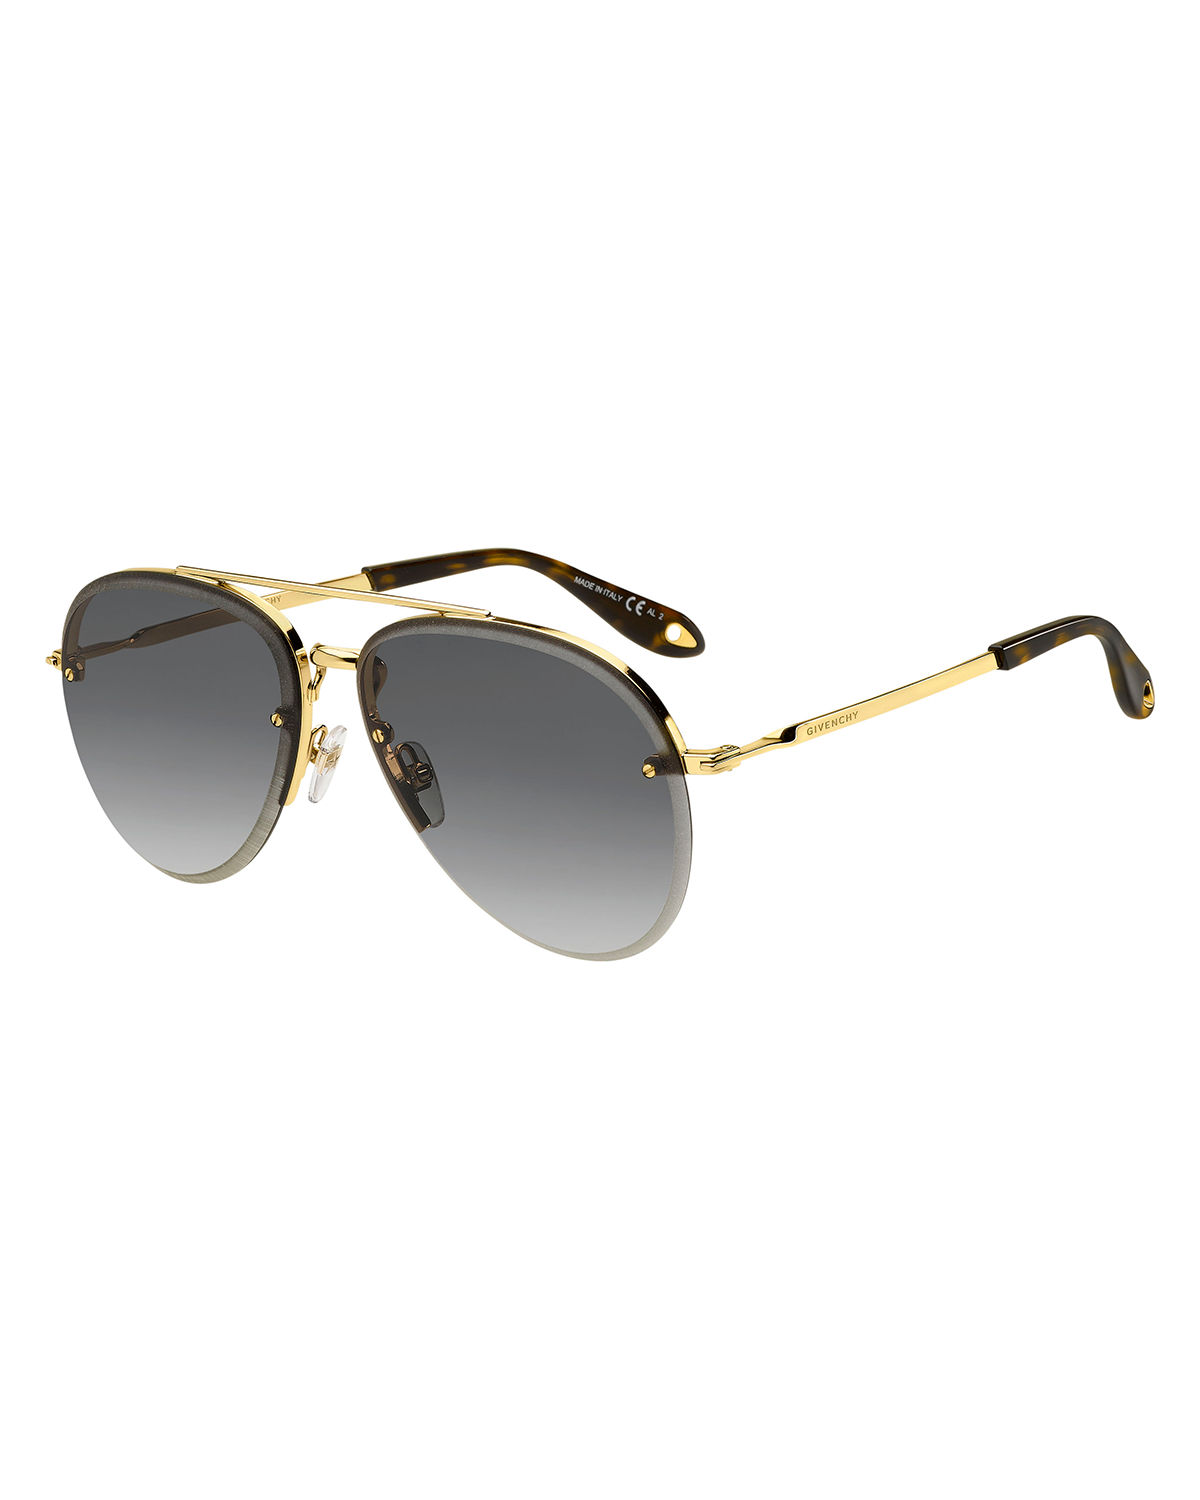 69a1d245d2c Givenchy Semi-Rimless Gradient Aviator Sunglasses